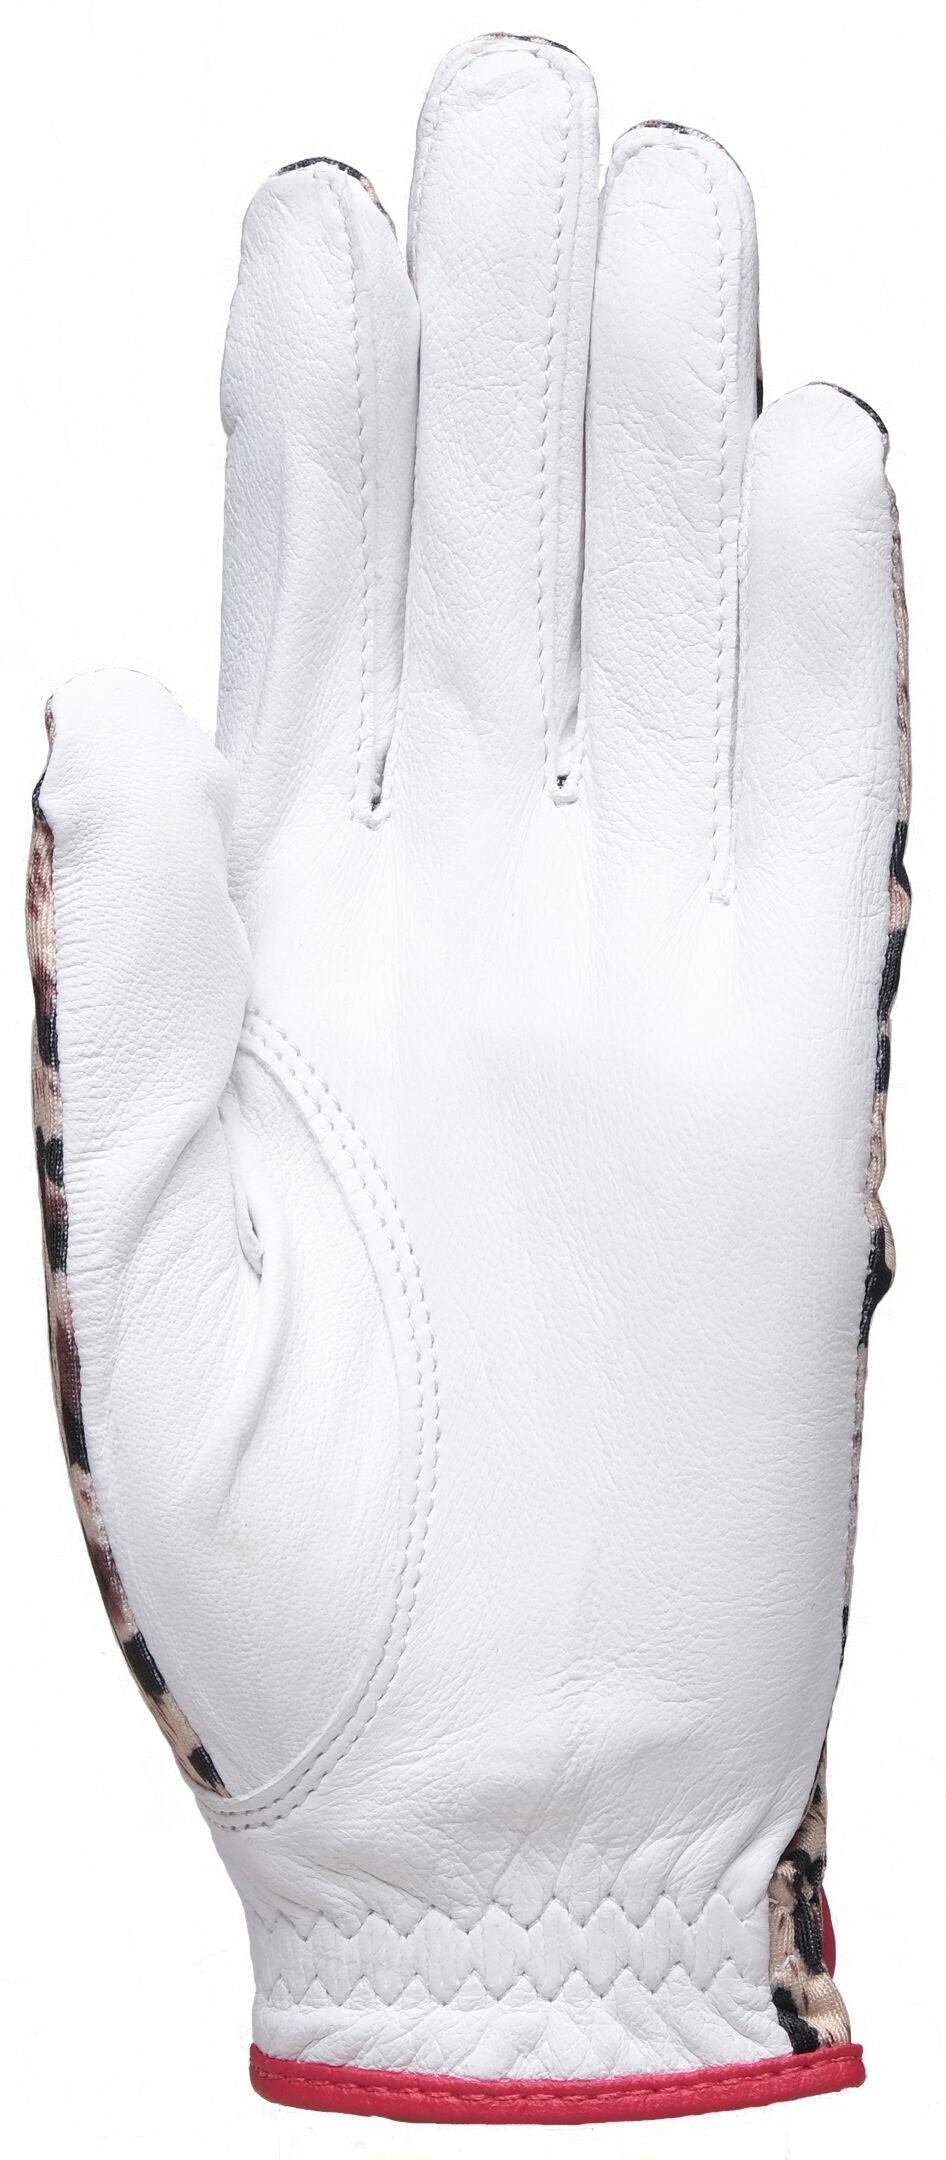 LEOPARD Women's Golf Glove